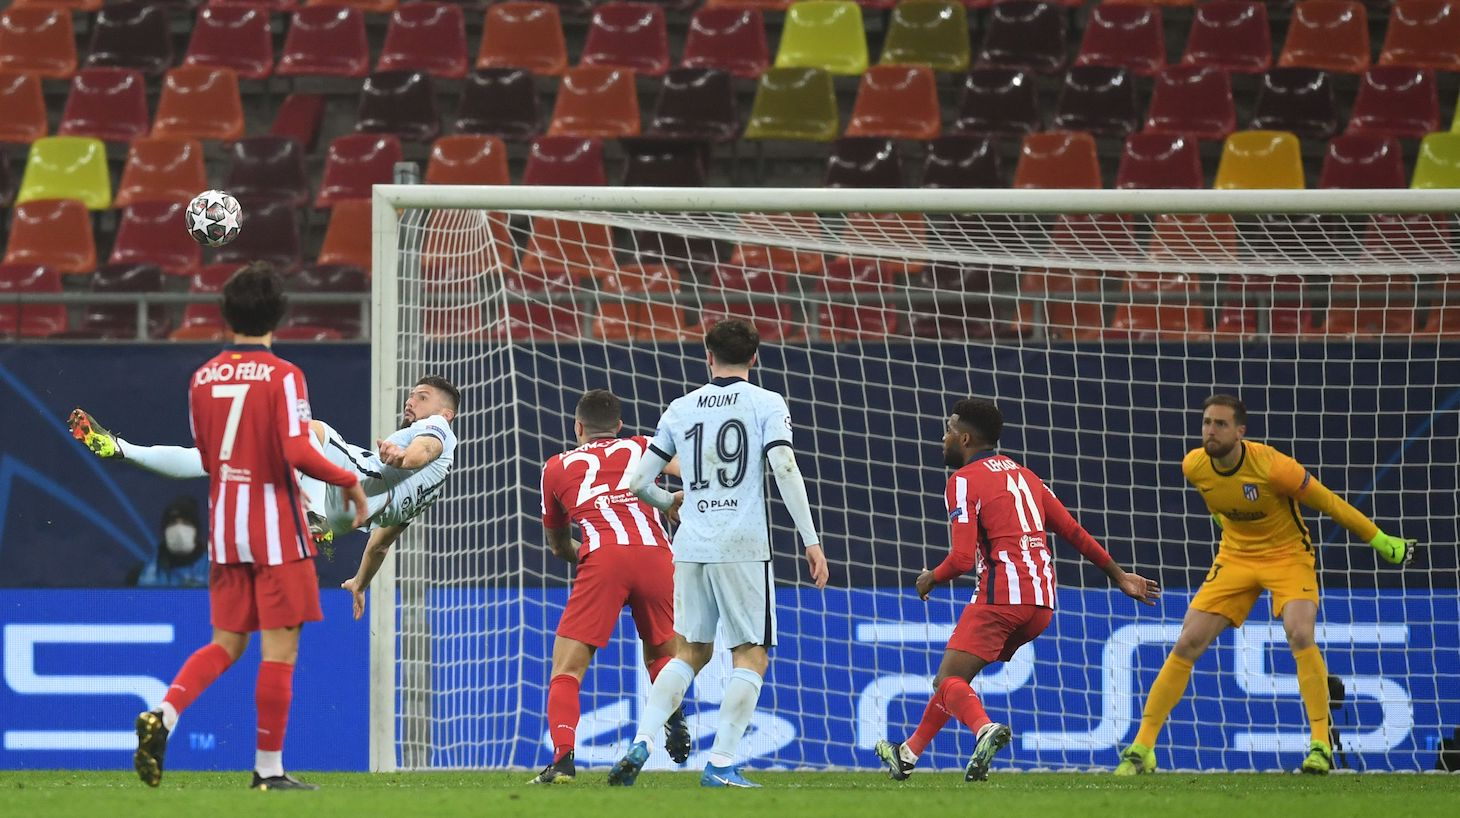 Chelsea's French striker Olivier Giroud (L) scores during the UEFA Champions League round of 16 first leg football match between Club Atletico de Madrid and Chelsea at the Arena Nationala stadium in Bucharest on February 23, 2021.